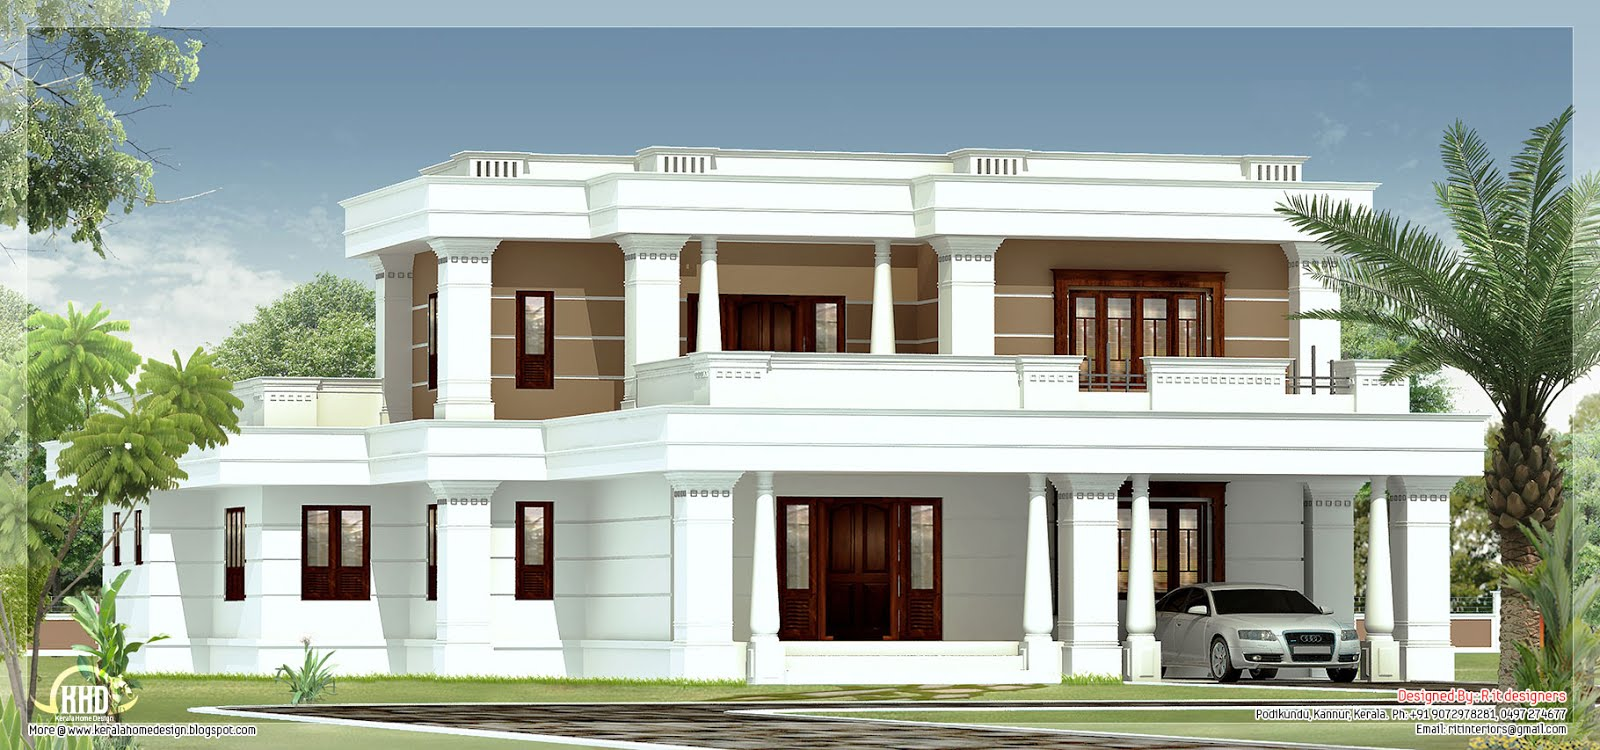 4 bedroom flat roof villa house design plans for 4 bed new build house